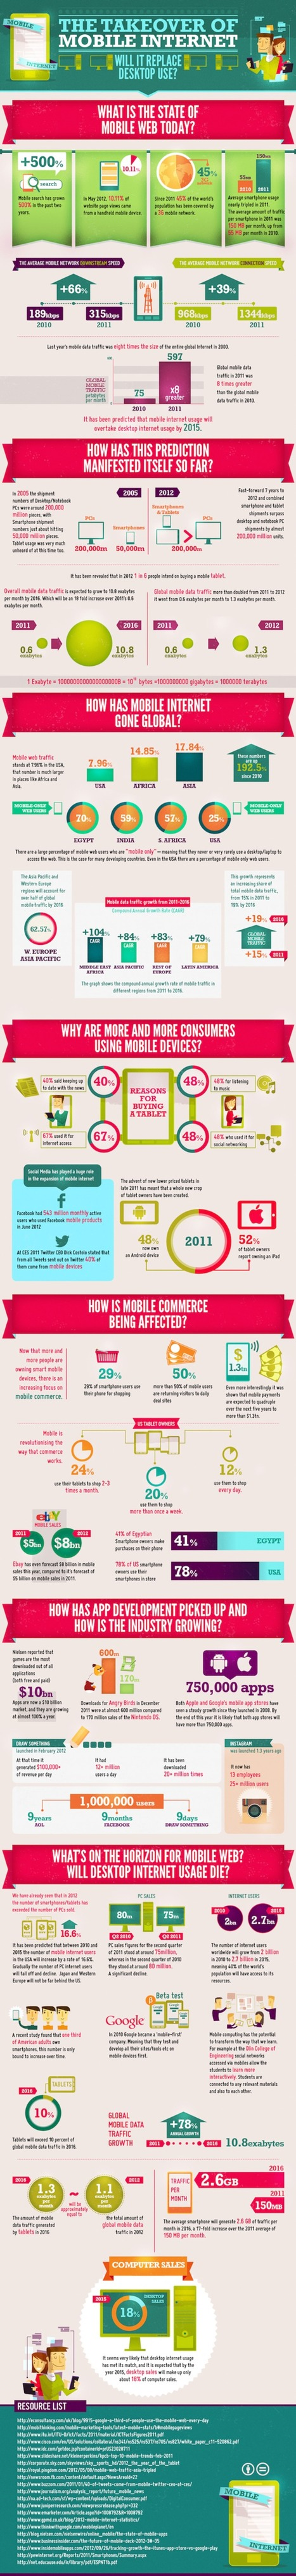 Will Mobile Internet Replace Desktop? [INFOGRAPHIC] | Winning Digital Strategies | Scoop.it